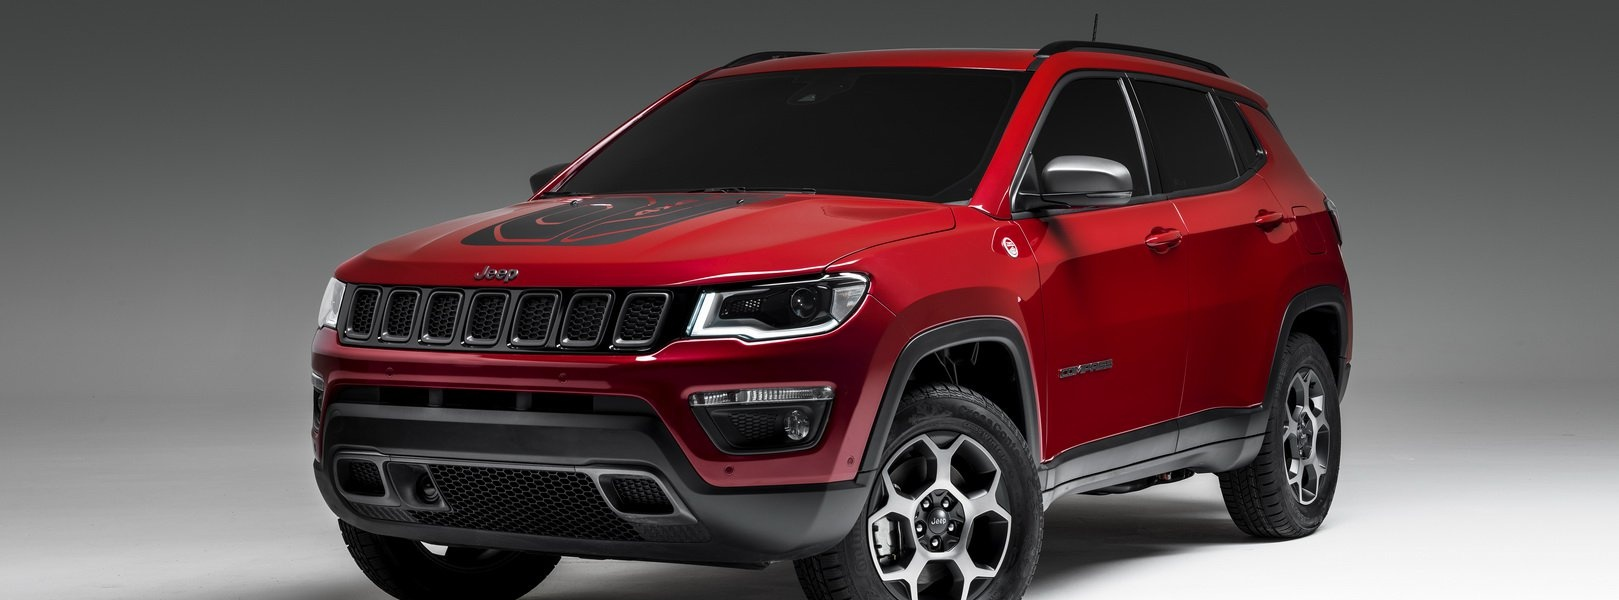 2019-jeep-compass-phev-1.jpg